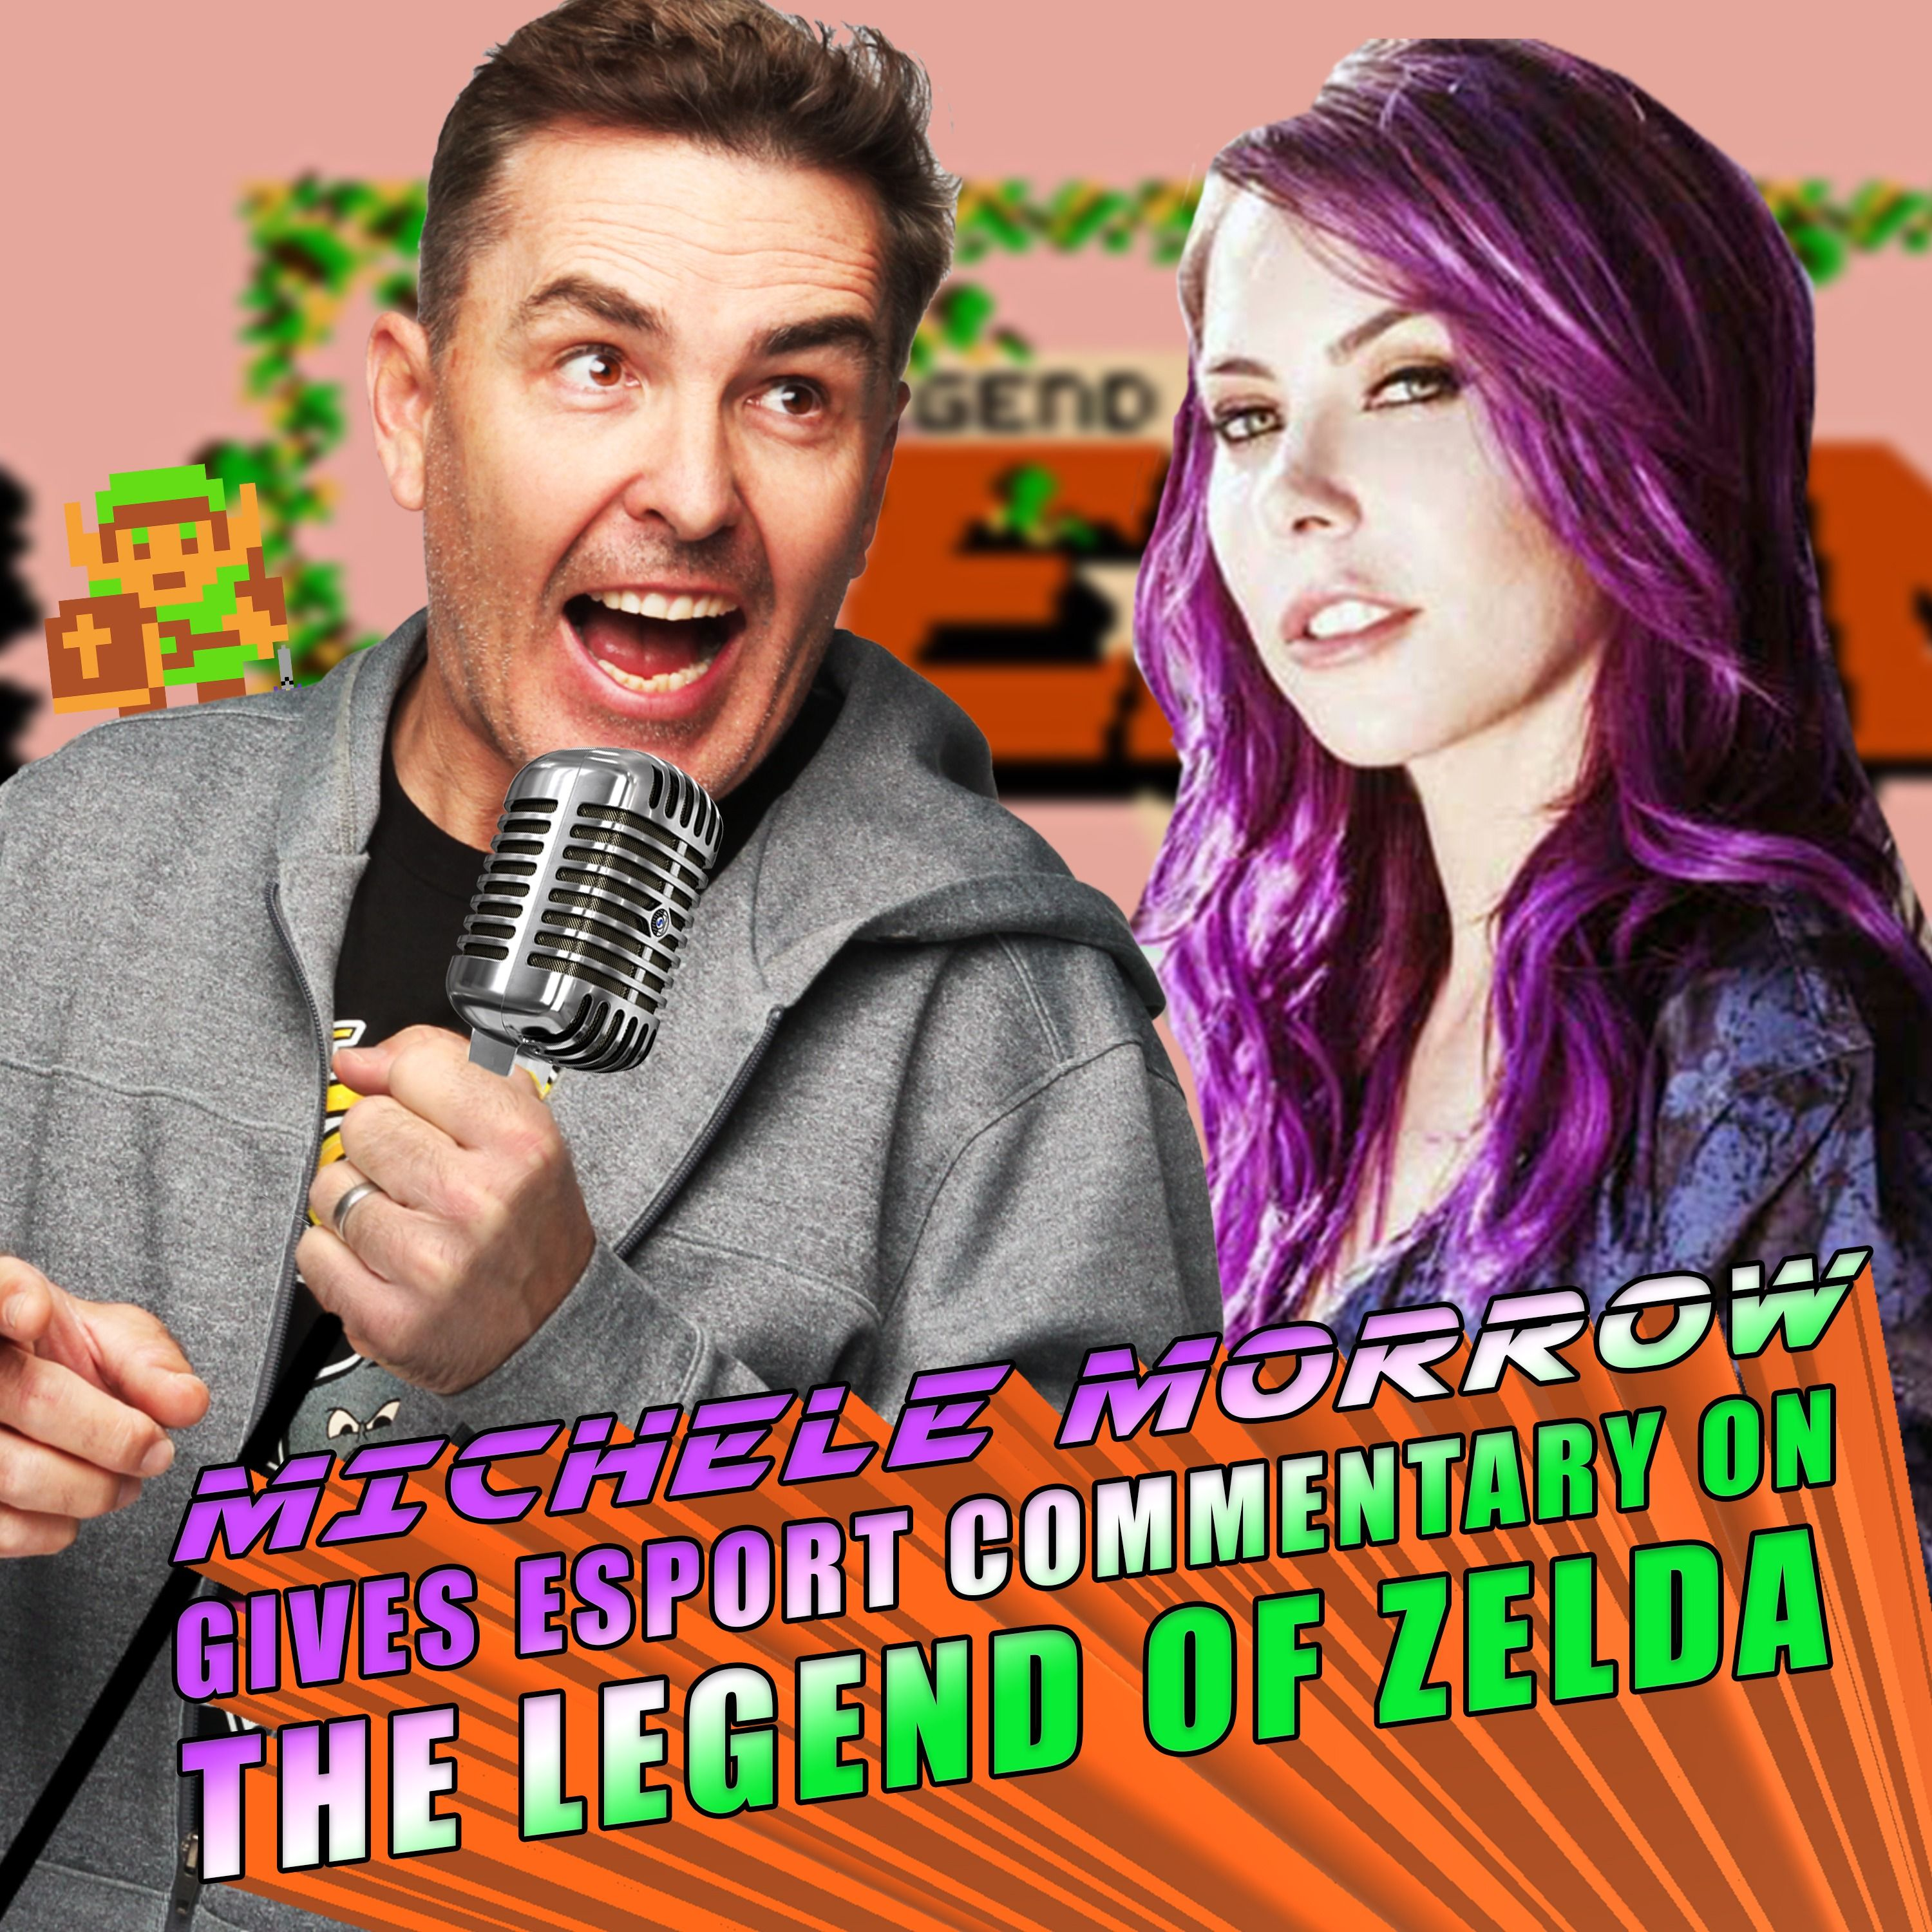 The Legend Of Zelda Esport Commentary With Michele Morrow & Nolan North! | RETRO REPLAY